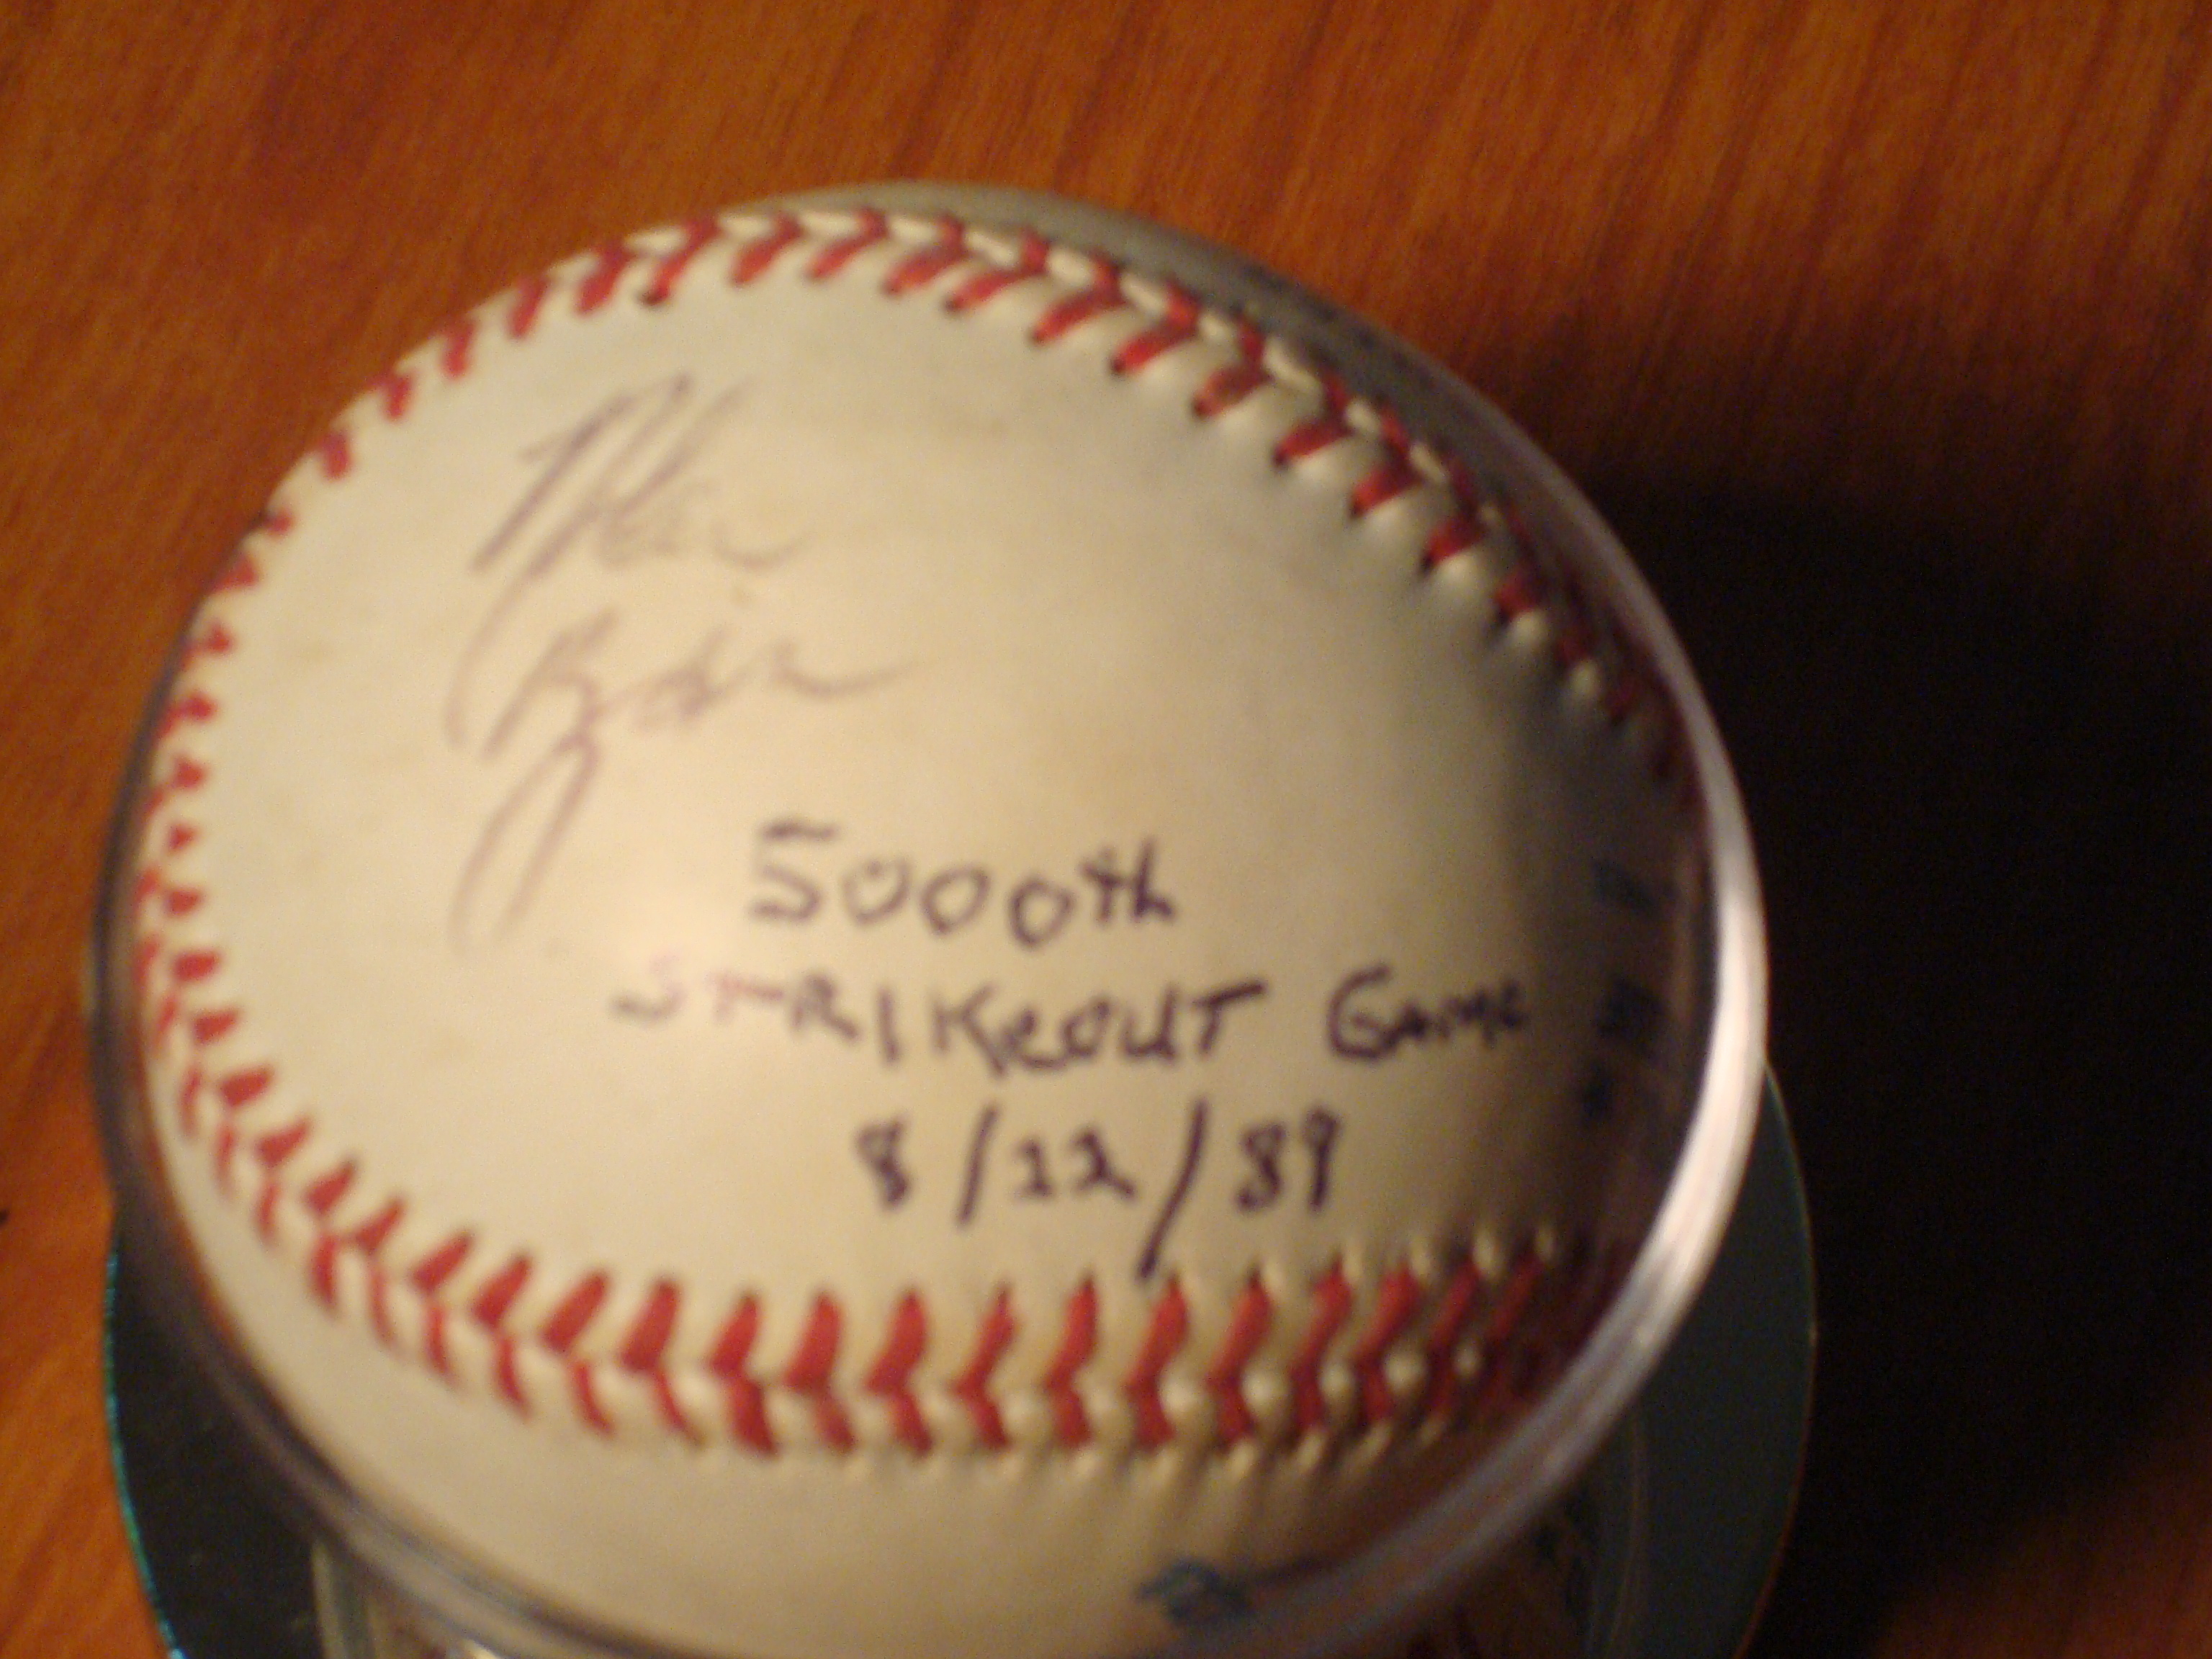 Original Ball Autograph 1989 Nolan Ryan Ball on his 5,000 Strikeout of Rickey Henderson